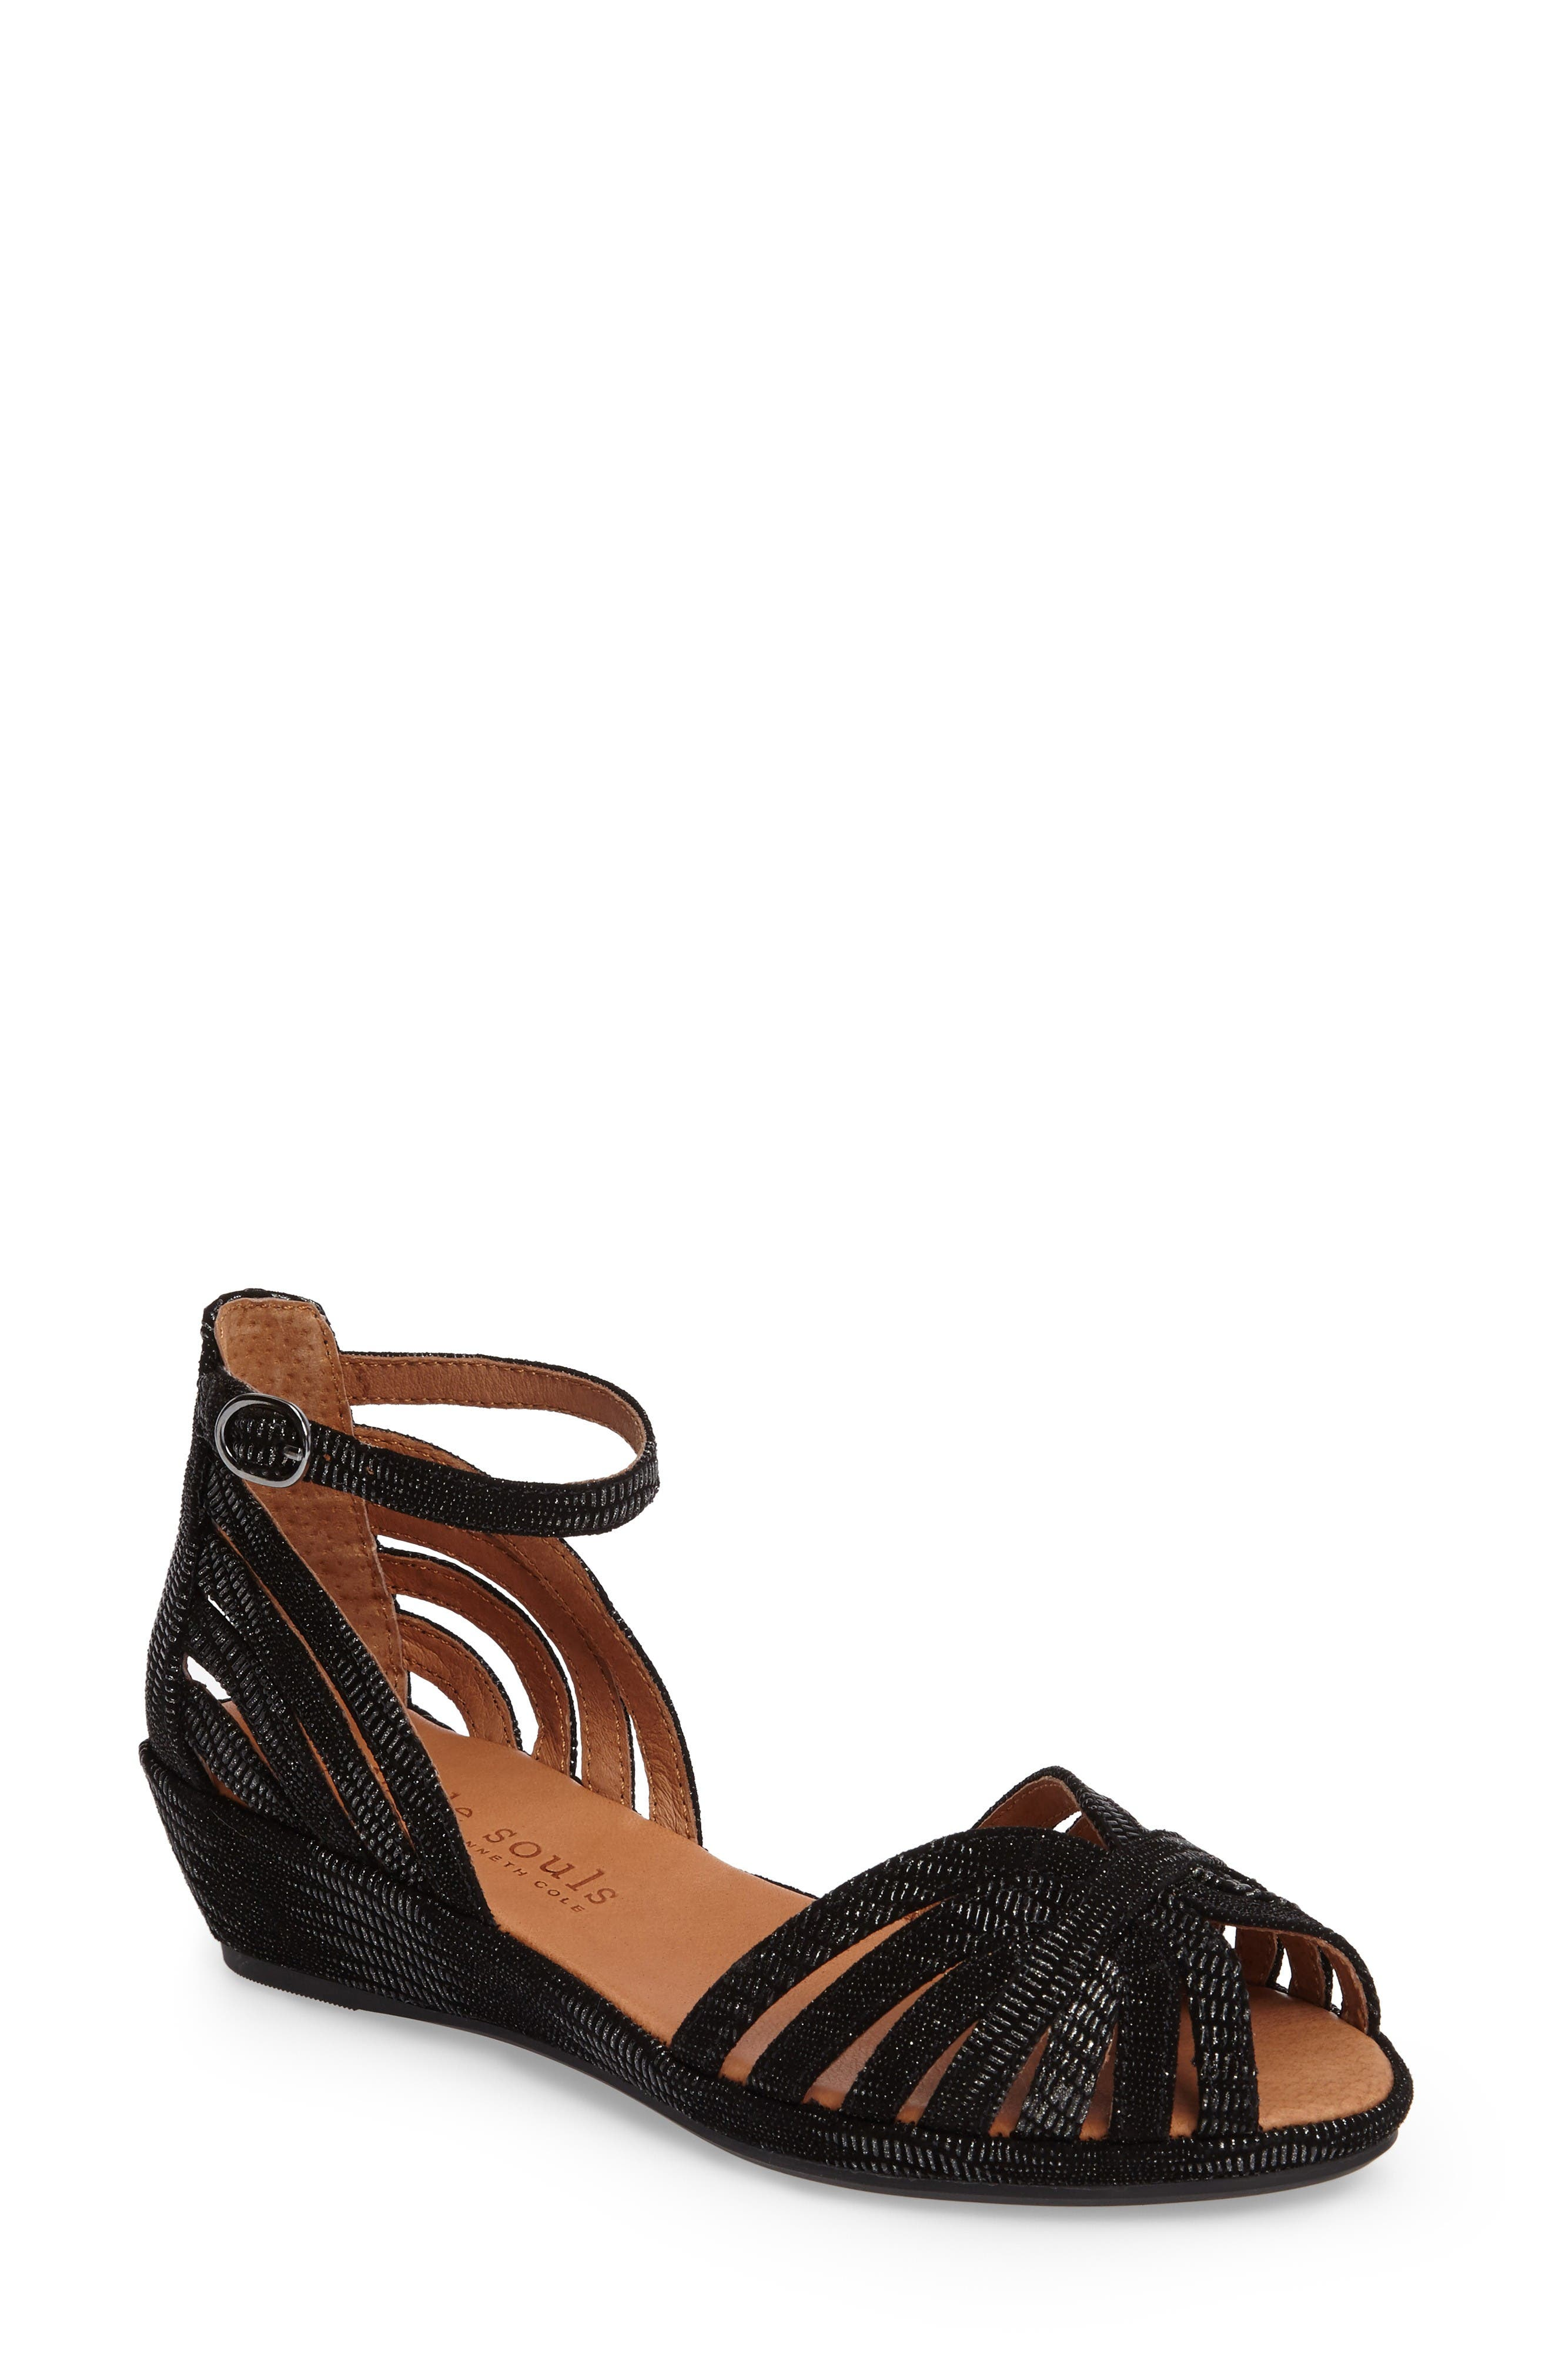 by Kenneth Cole 'Leah' Peep Toe Wedge Sandal,                             Main thumbnail 1, color,                             Black/ Black Leather